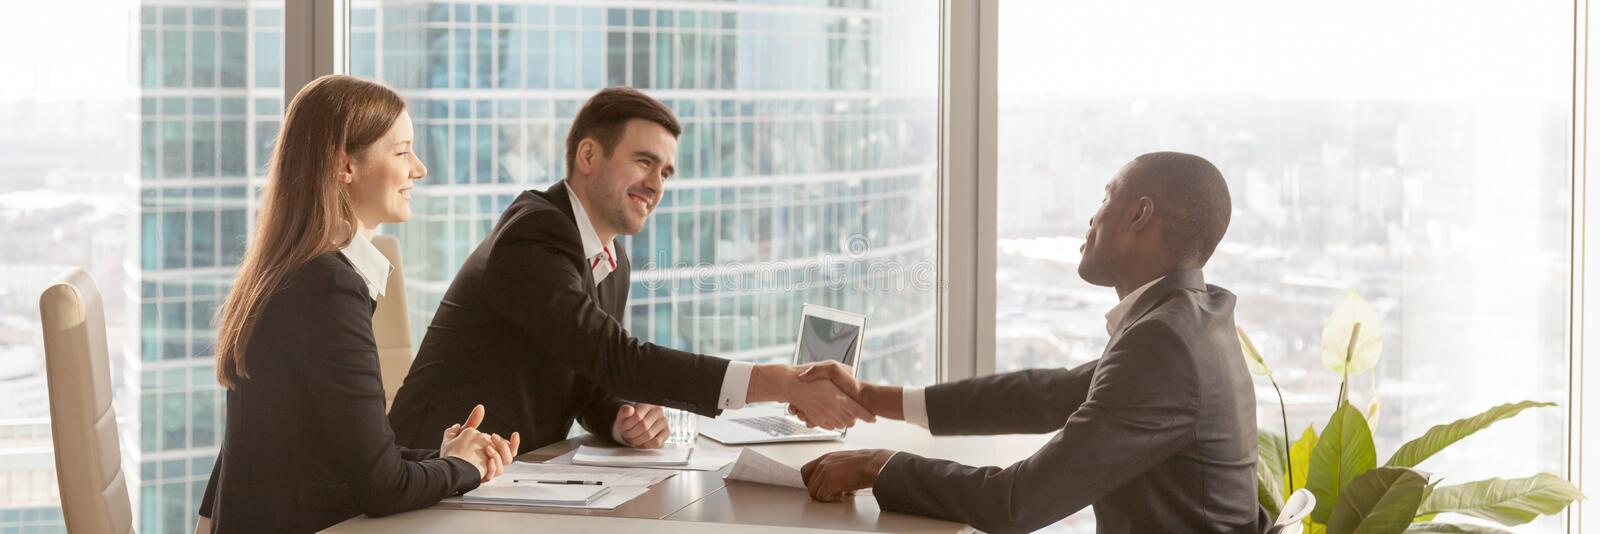 Horizontal image african boss congratulate business partner with successful negotiations royalty free stock photo